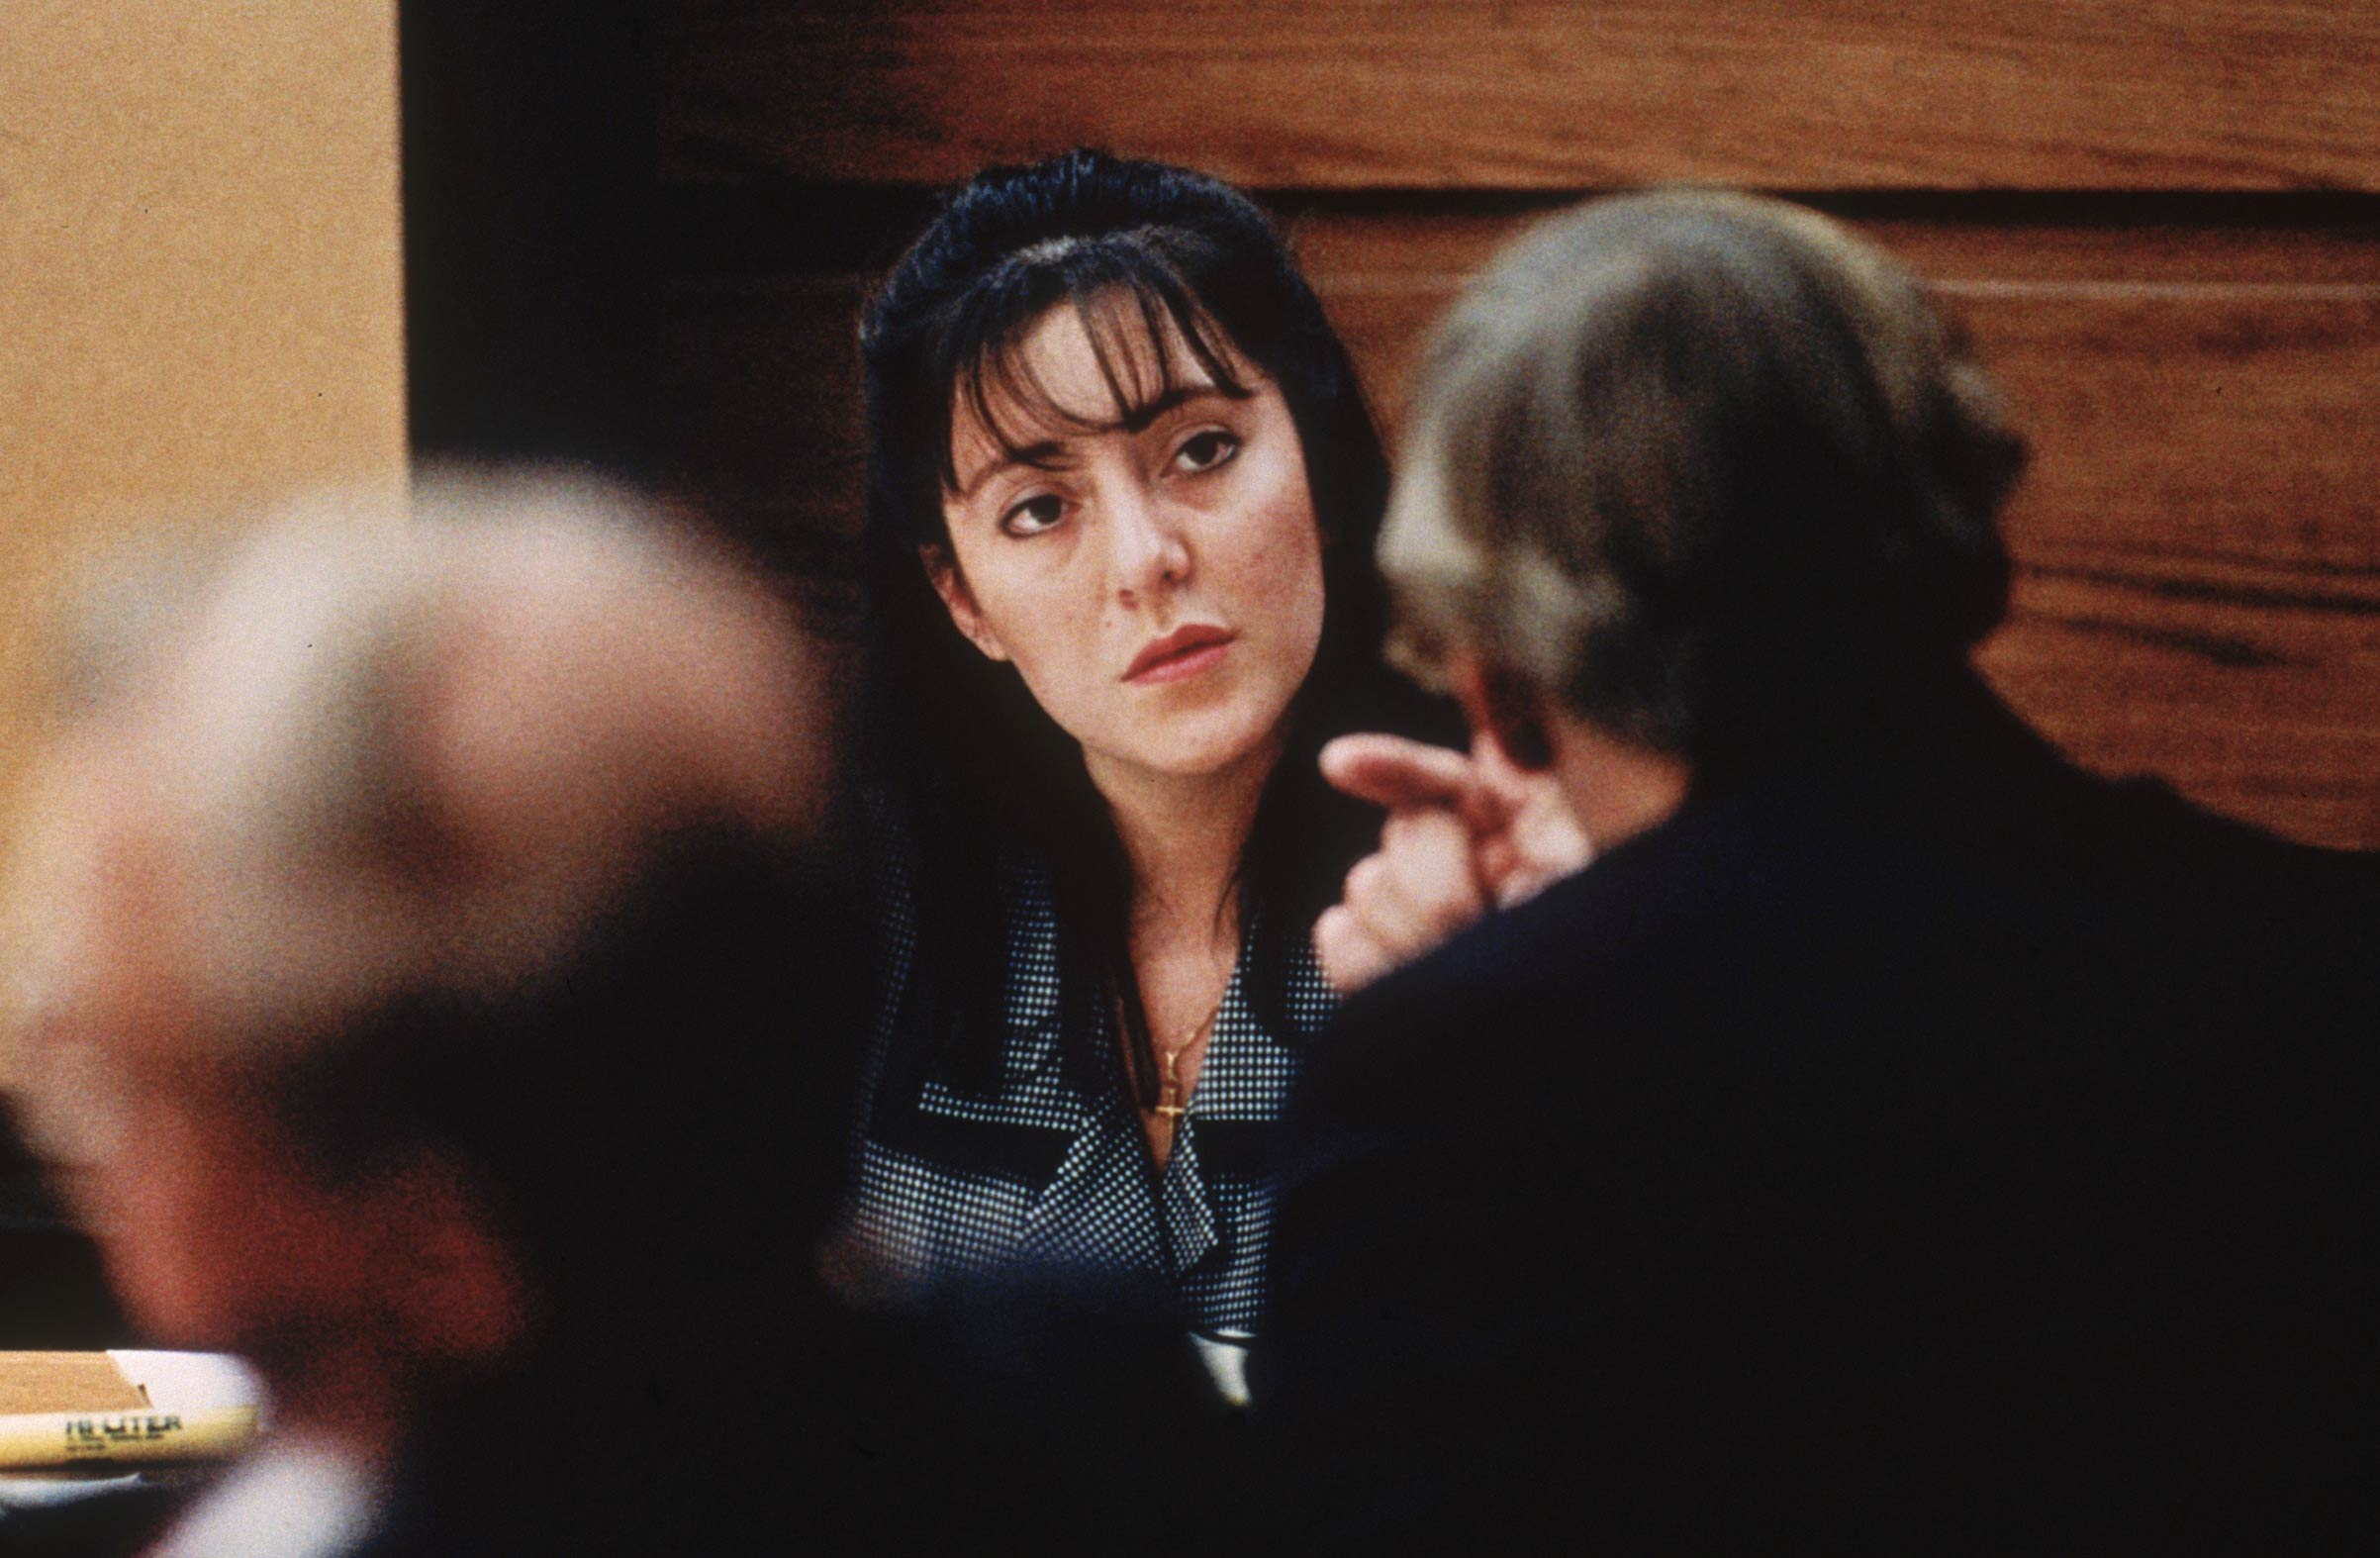 Lorena Bobbitt takes the witness stand in her trial for cutting off her husband's penis in January 1994.